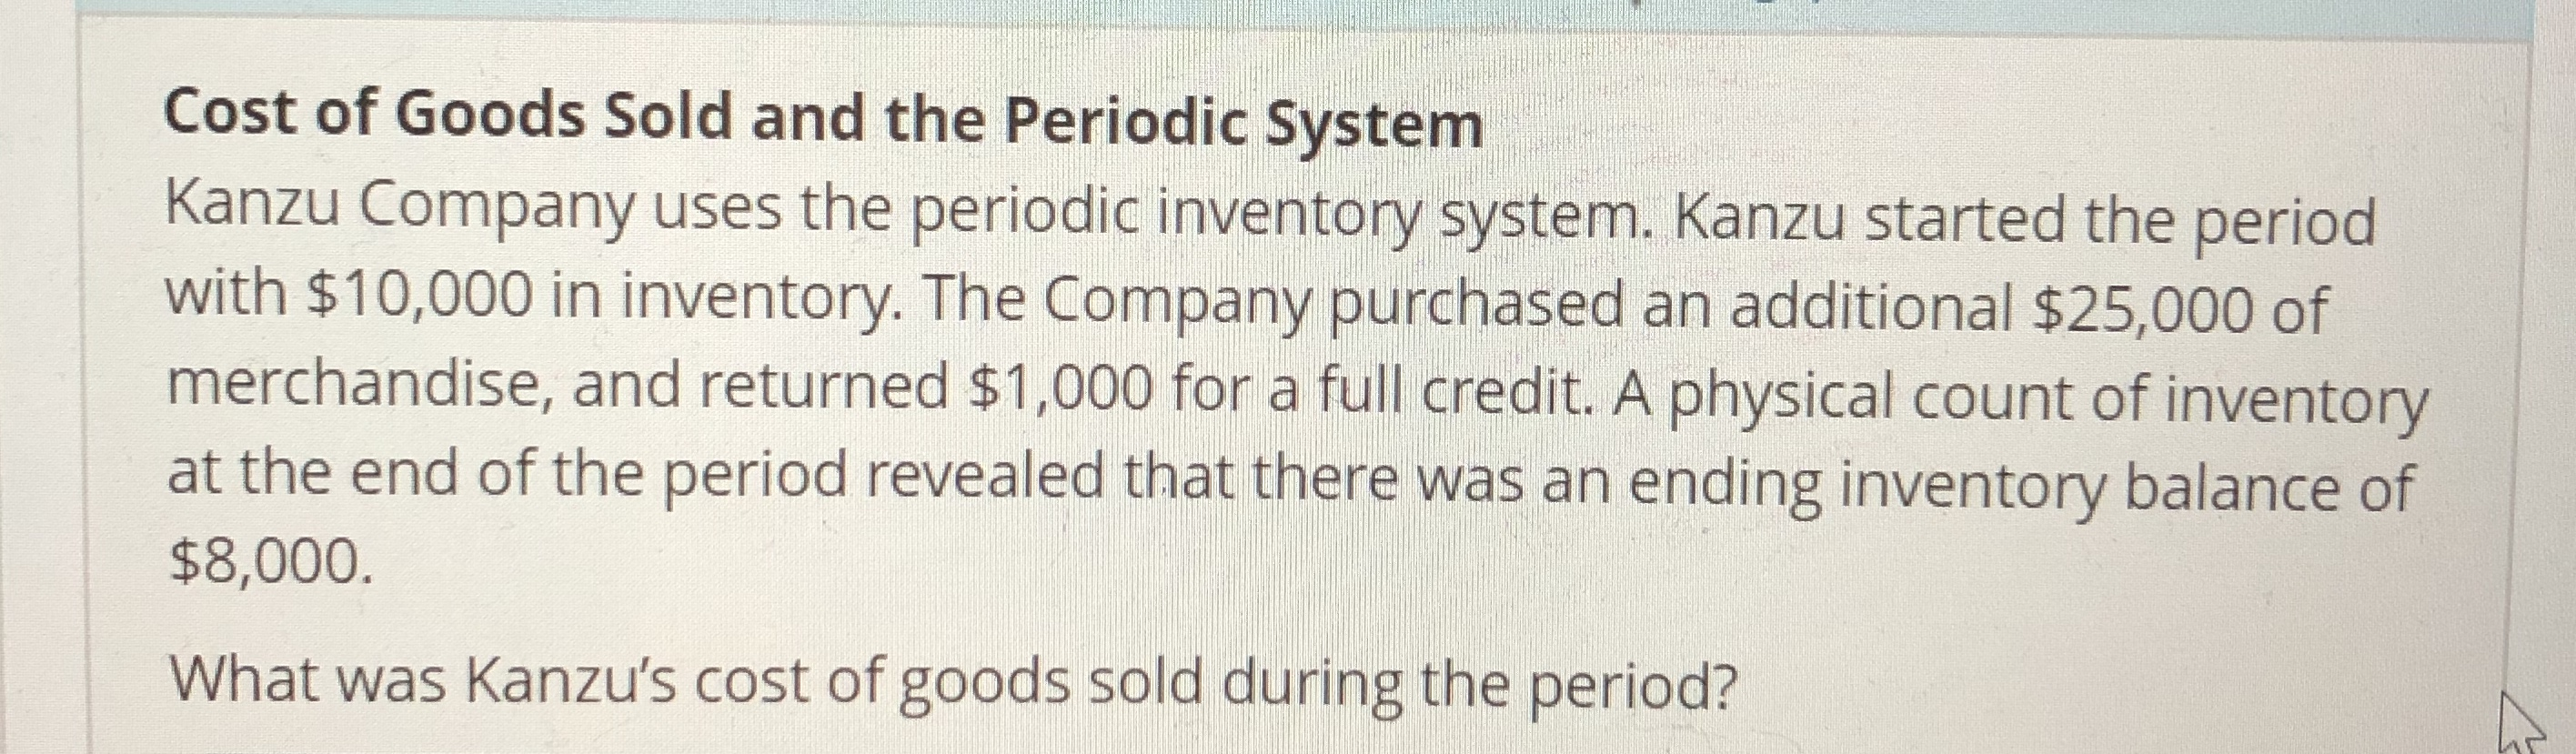 Cost of Goods Sold and the Periodic System Kanzu Company uses the periodic inventory system. Kanzu started the period with $10,000 in inventory. The Company purchased an additional $25,000 of merchandise, and returned $1,000 for a full credit. A physical count of inventory at the end of the period revealed that there was an ending inventory balance of $8,000 What was Kanzu's cost of goods sold during the period?